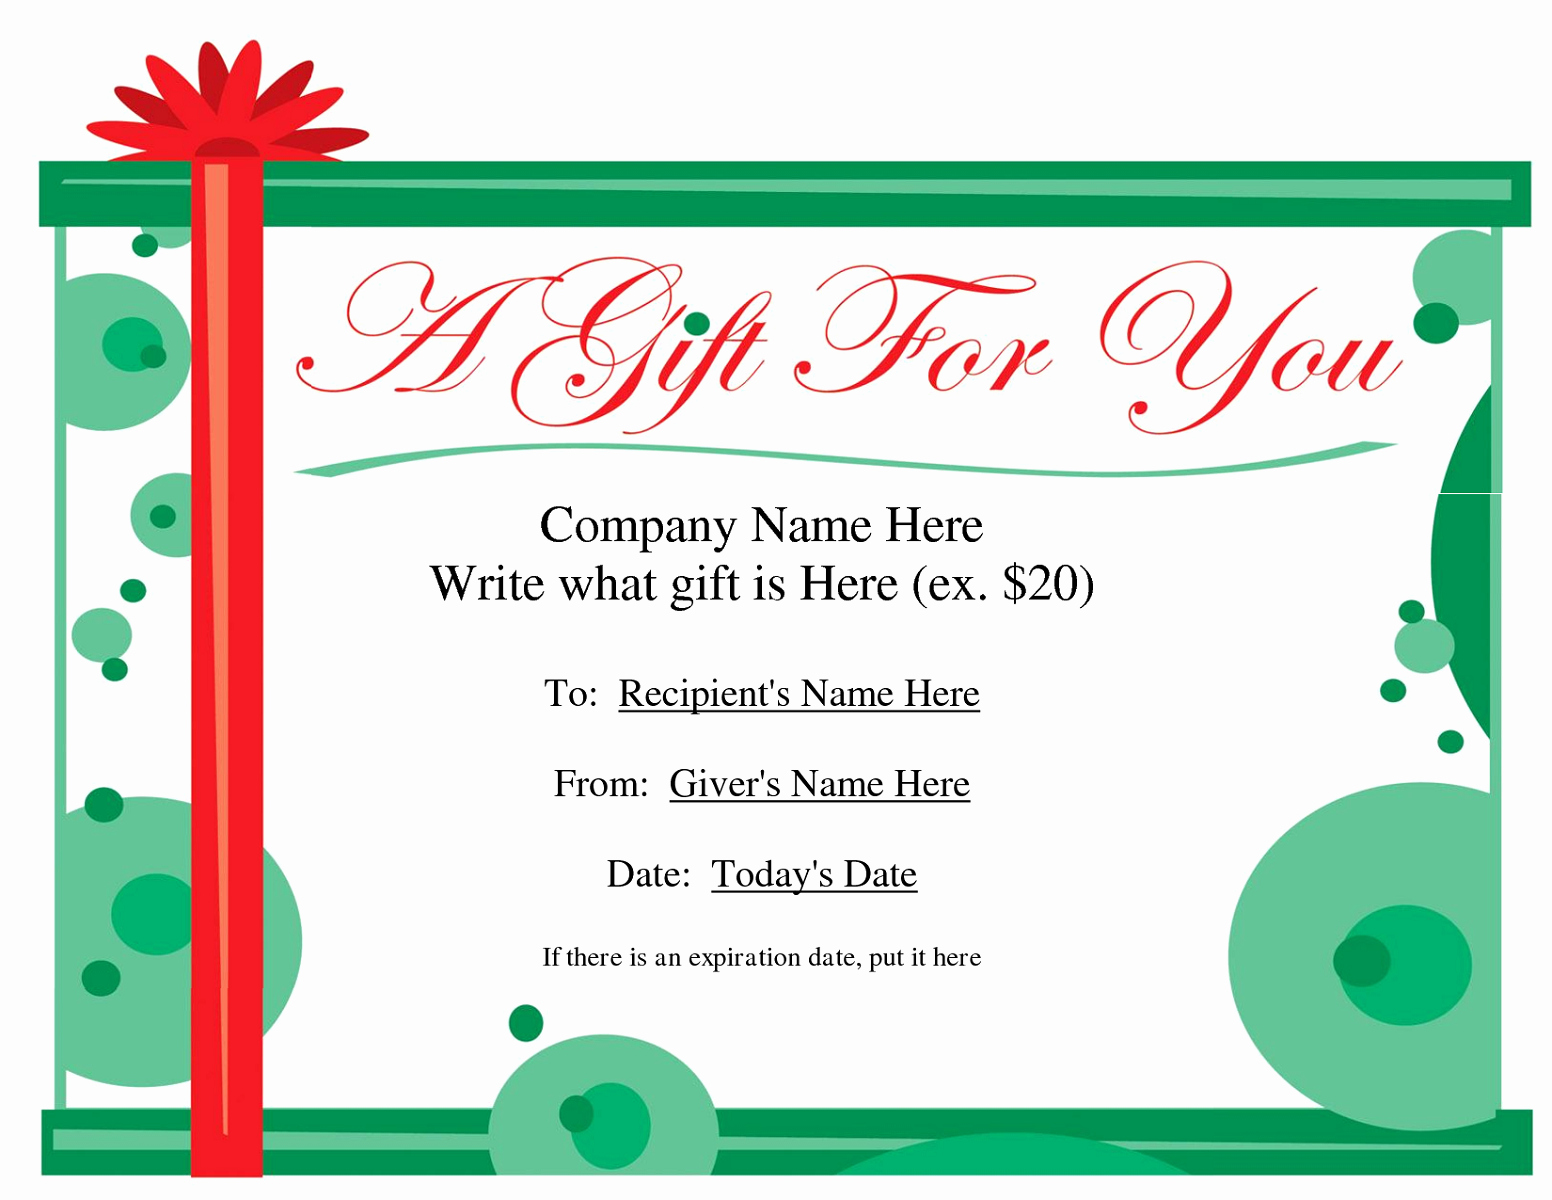 Template for Gift Certificate Elegant Gift Certificate Templates to Print